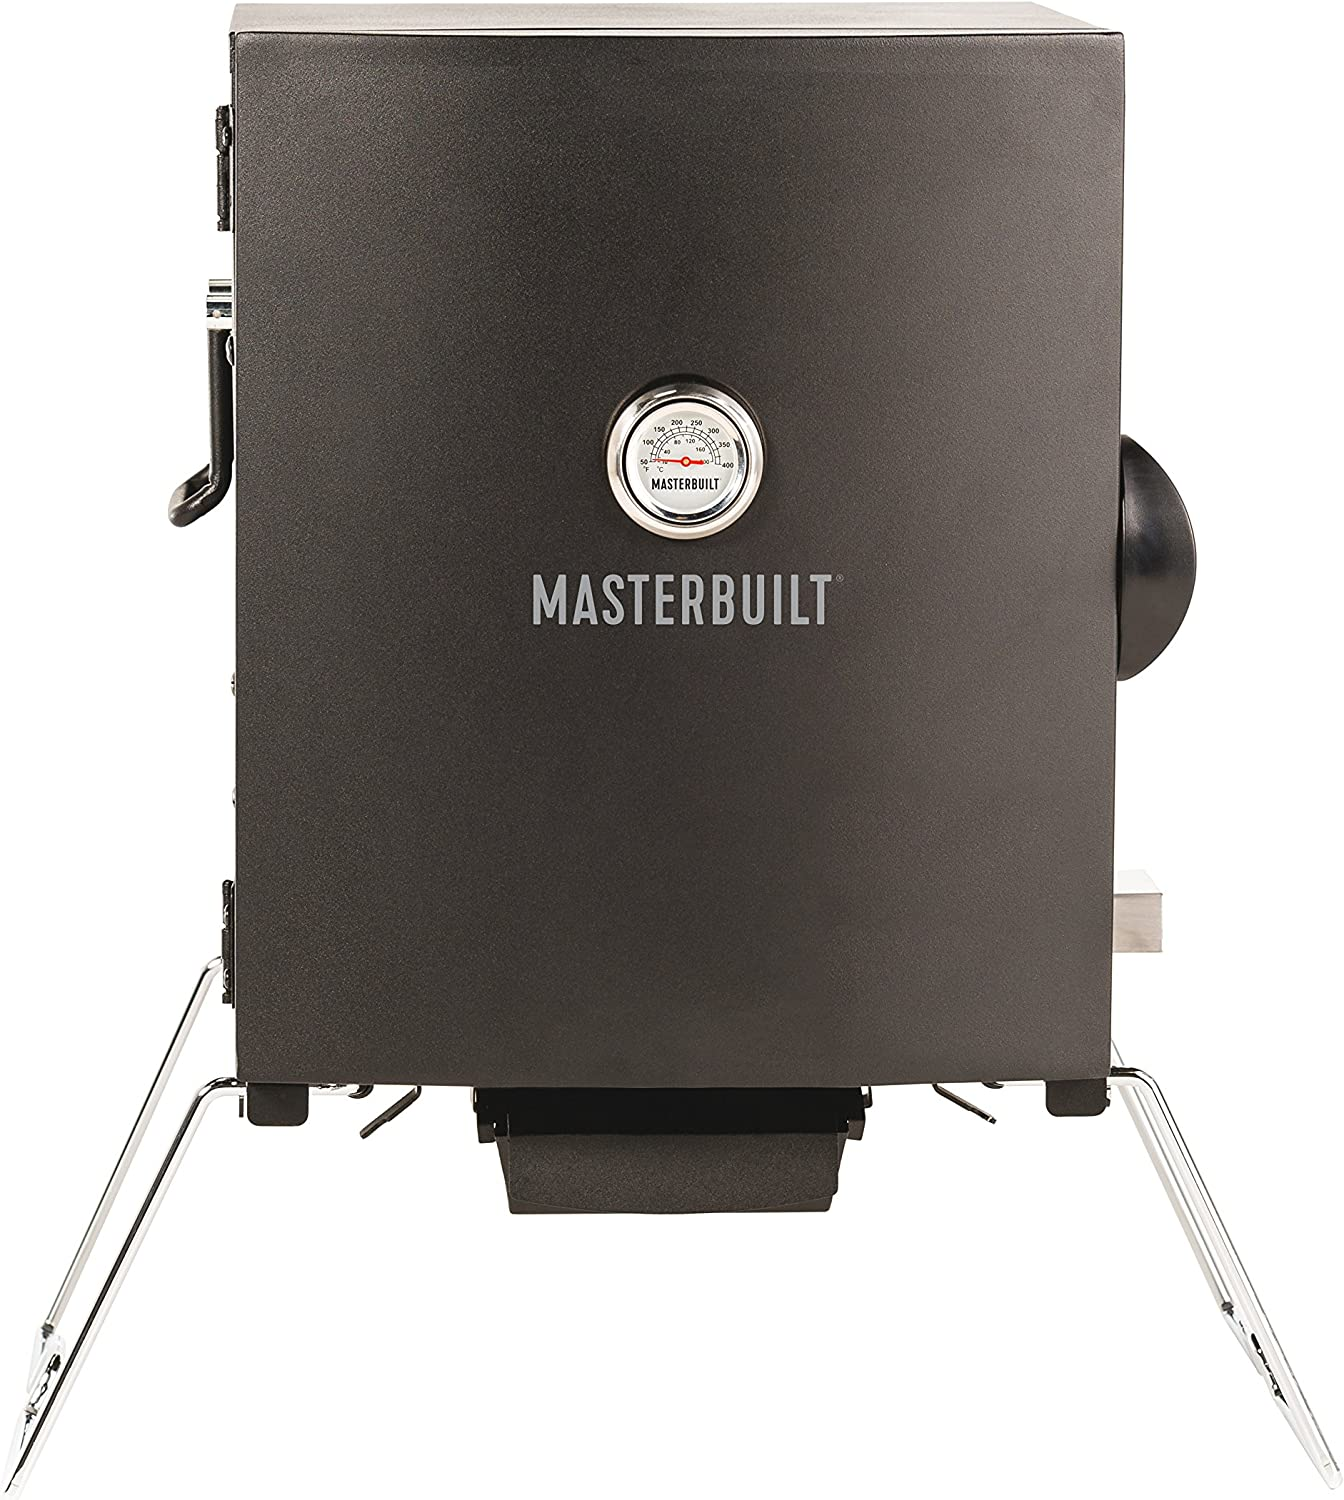 Masterbuilt MB20073716 2 Portable Electric Smoker review